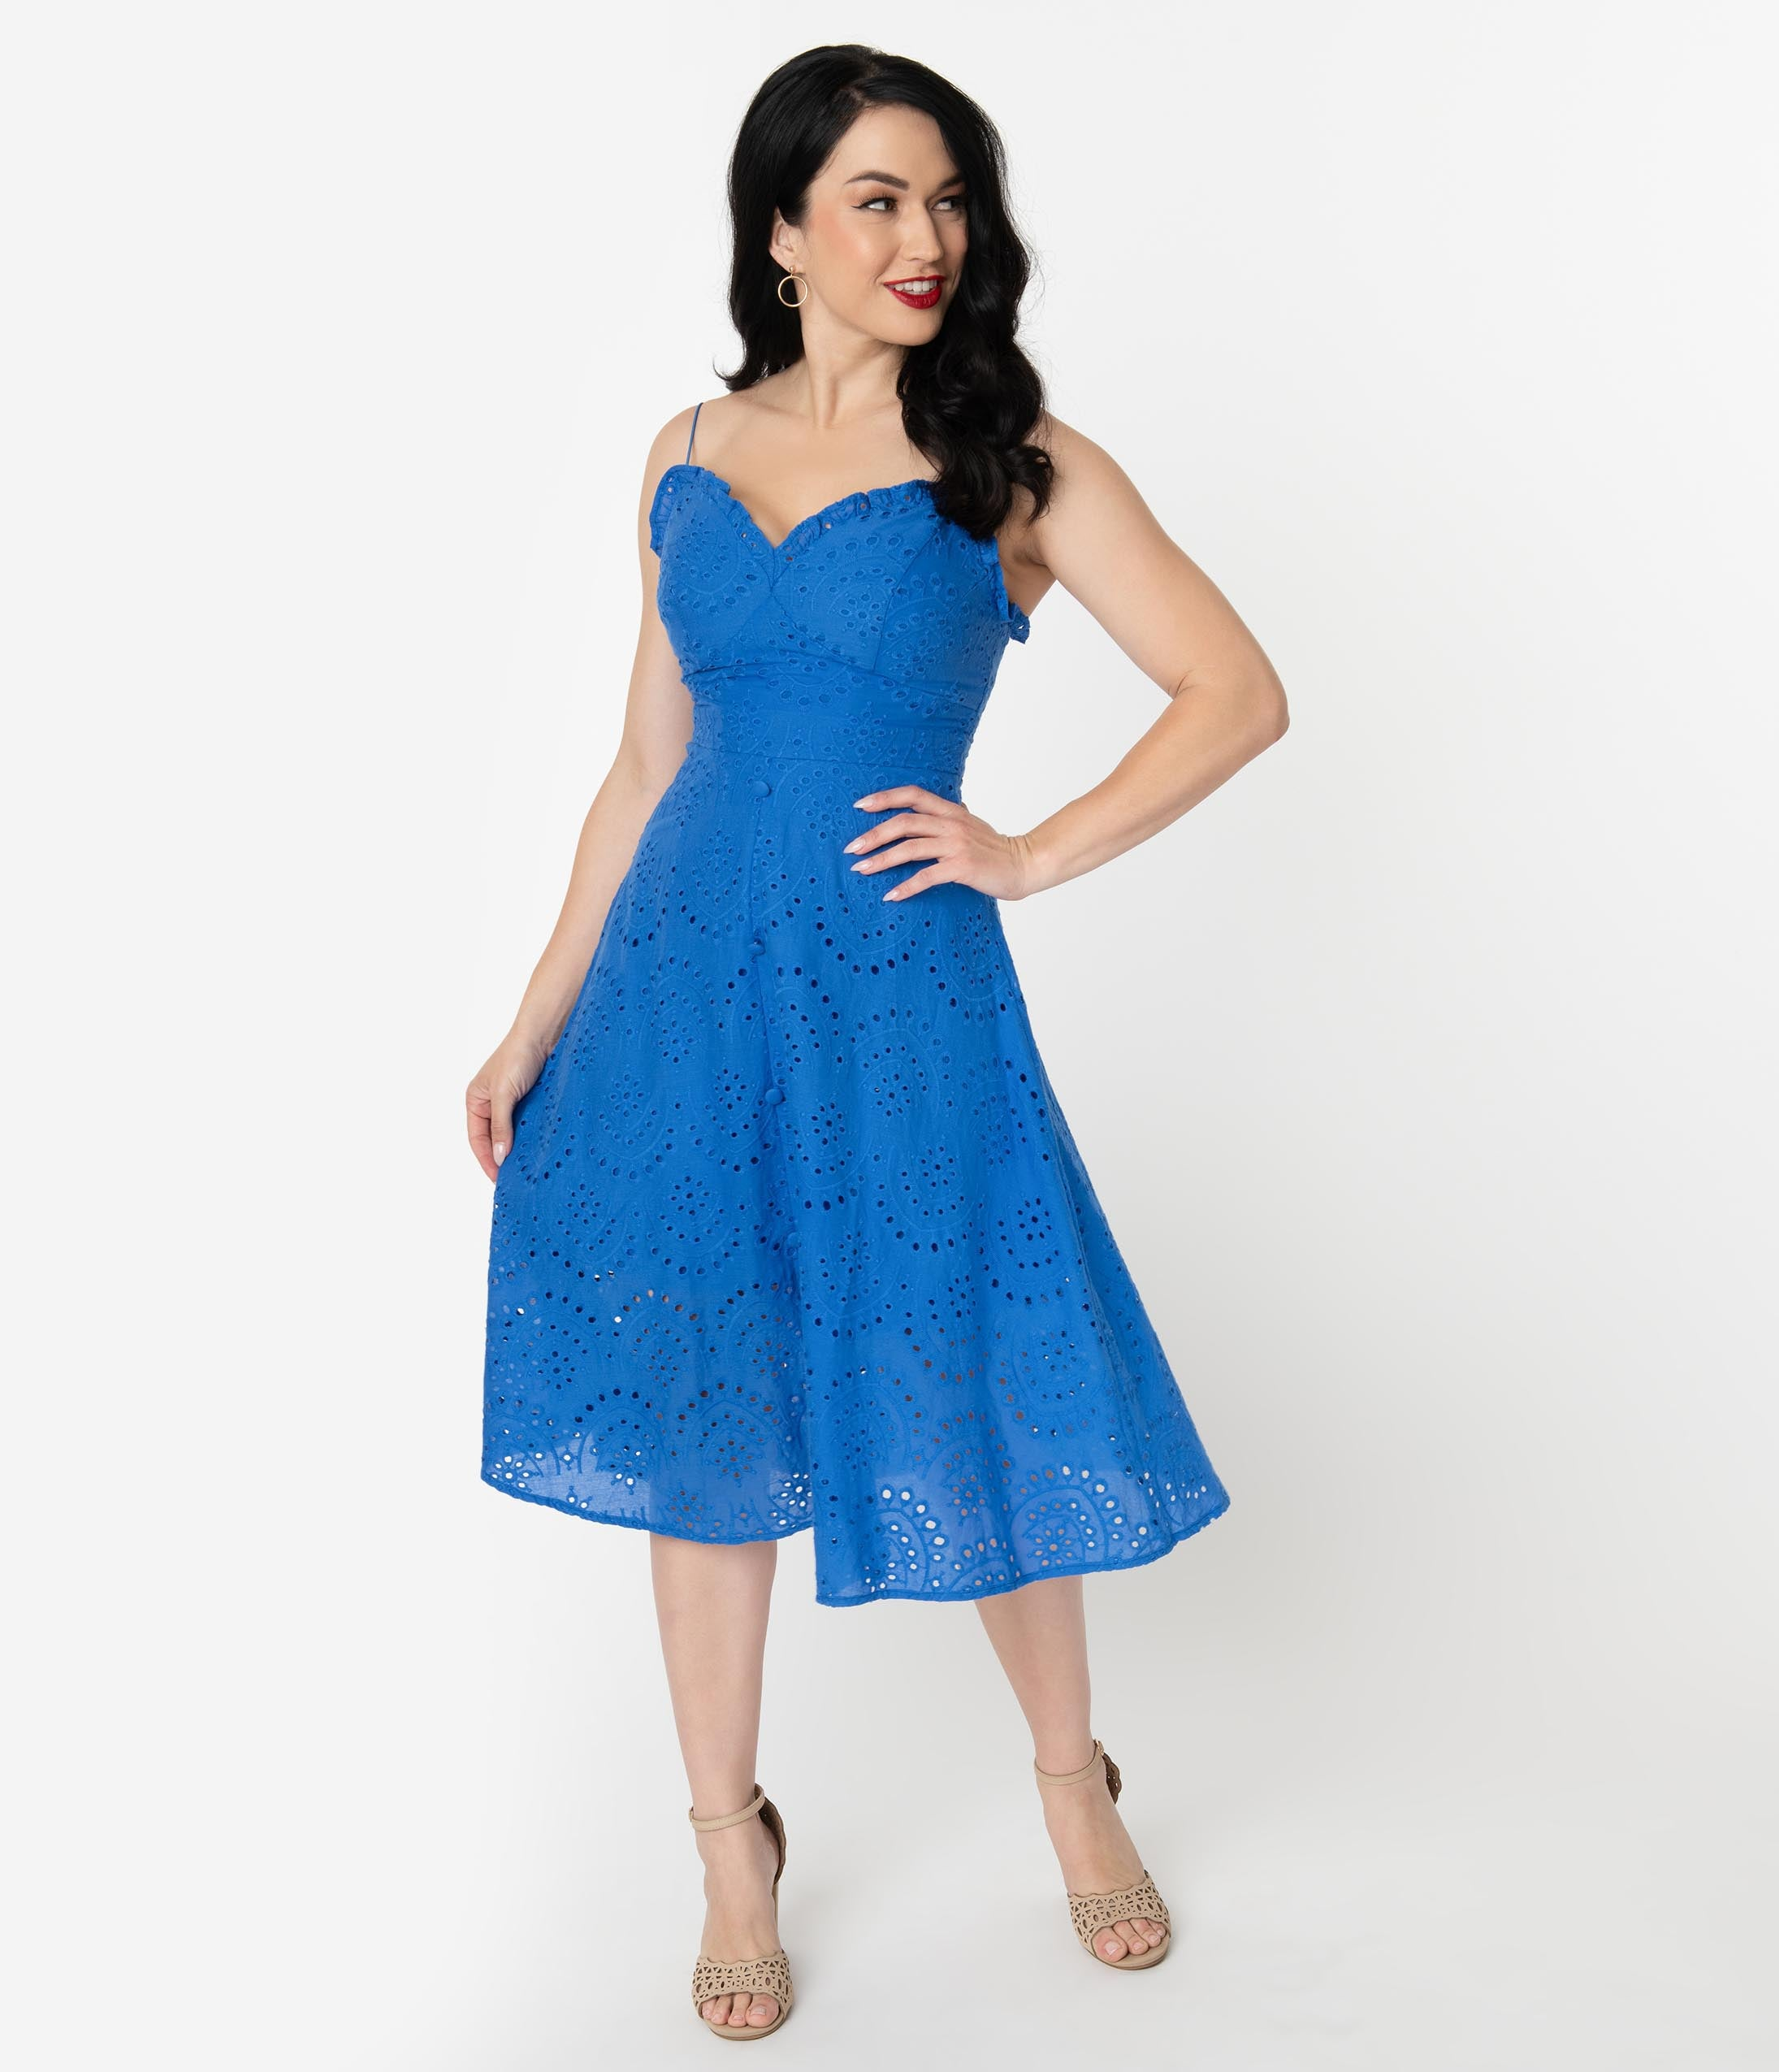 1950s Dresses, 50s Dresses | 1950s Style Dresses 1950S Style Royal Blue Cotton Eyelet Midi Dress $58.00 AT vintagedancer.com